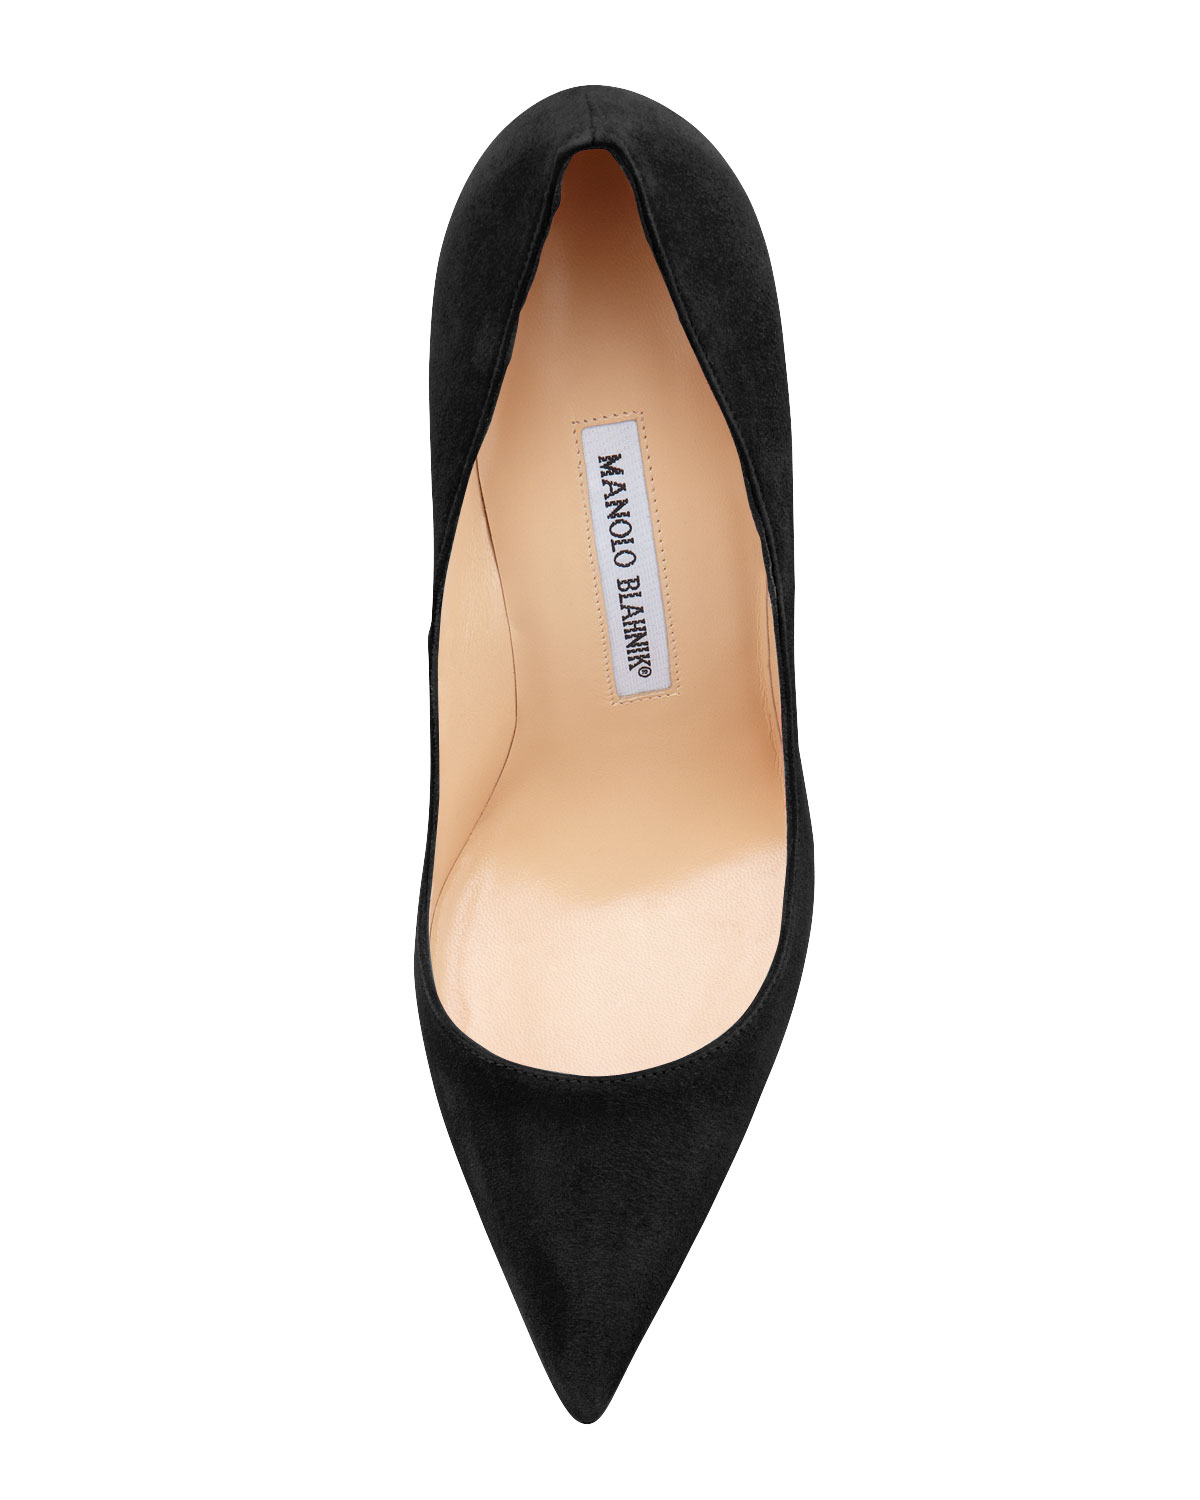 BB Suede 105mm Pump, Black (Made to Order)